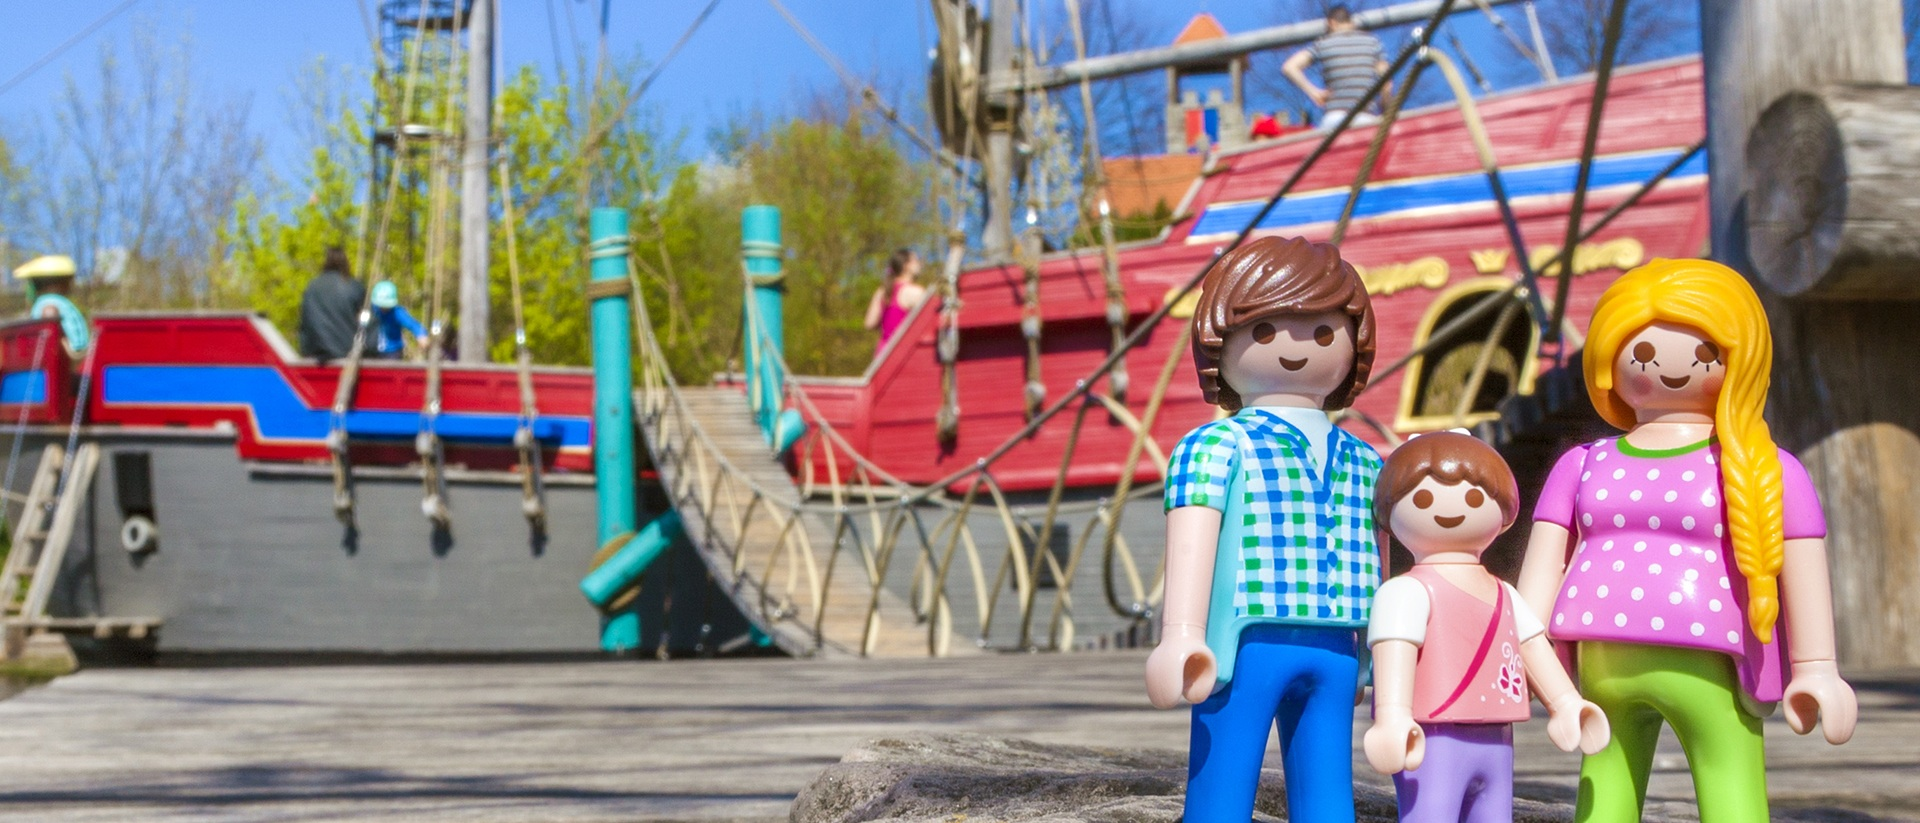 Playmobil fun park.com